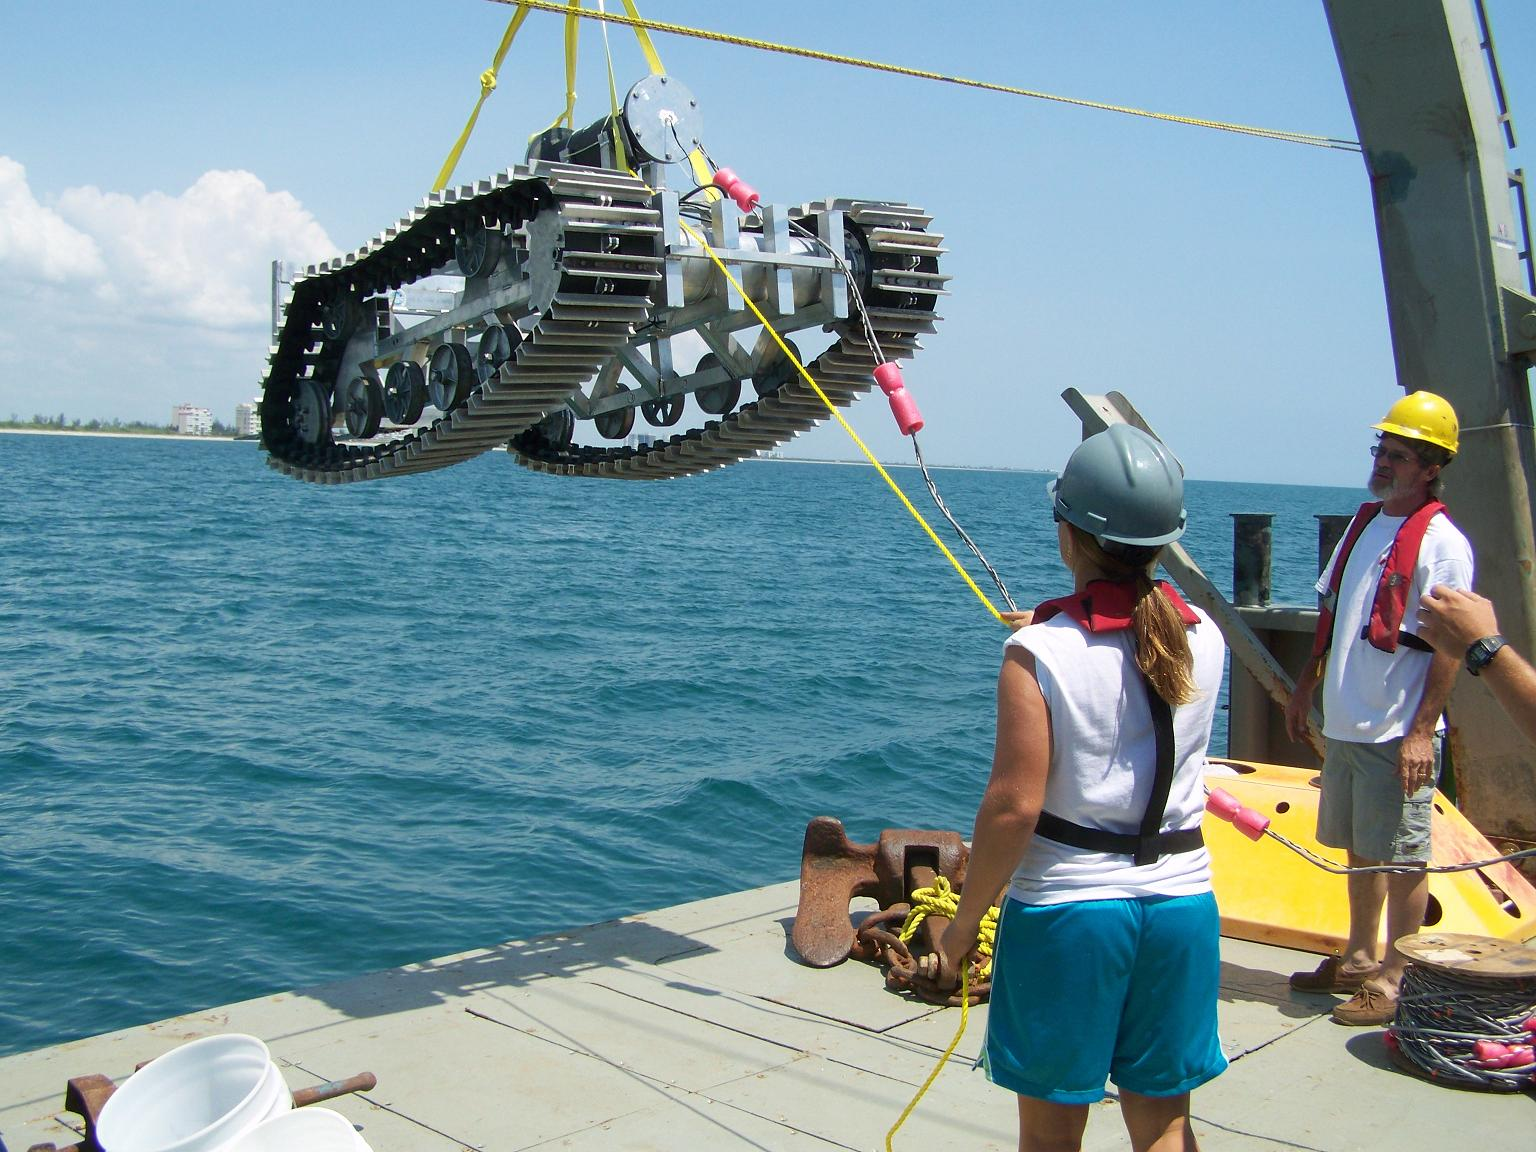 Learn More About the Job of Ocean Engineering